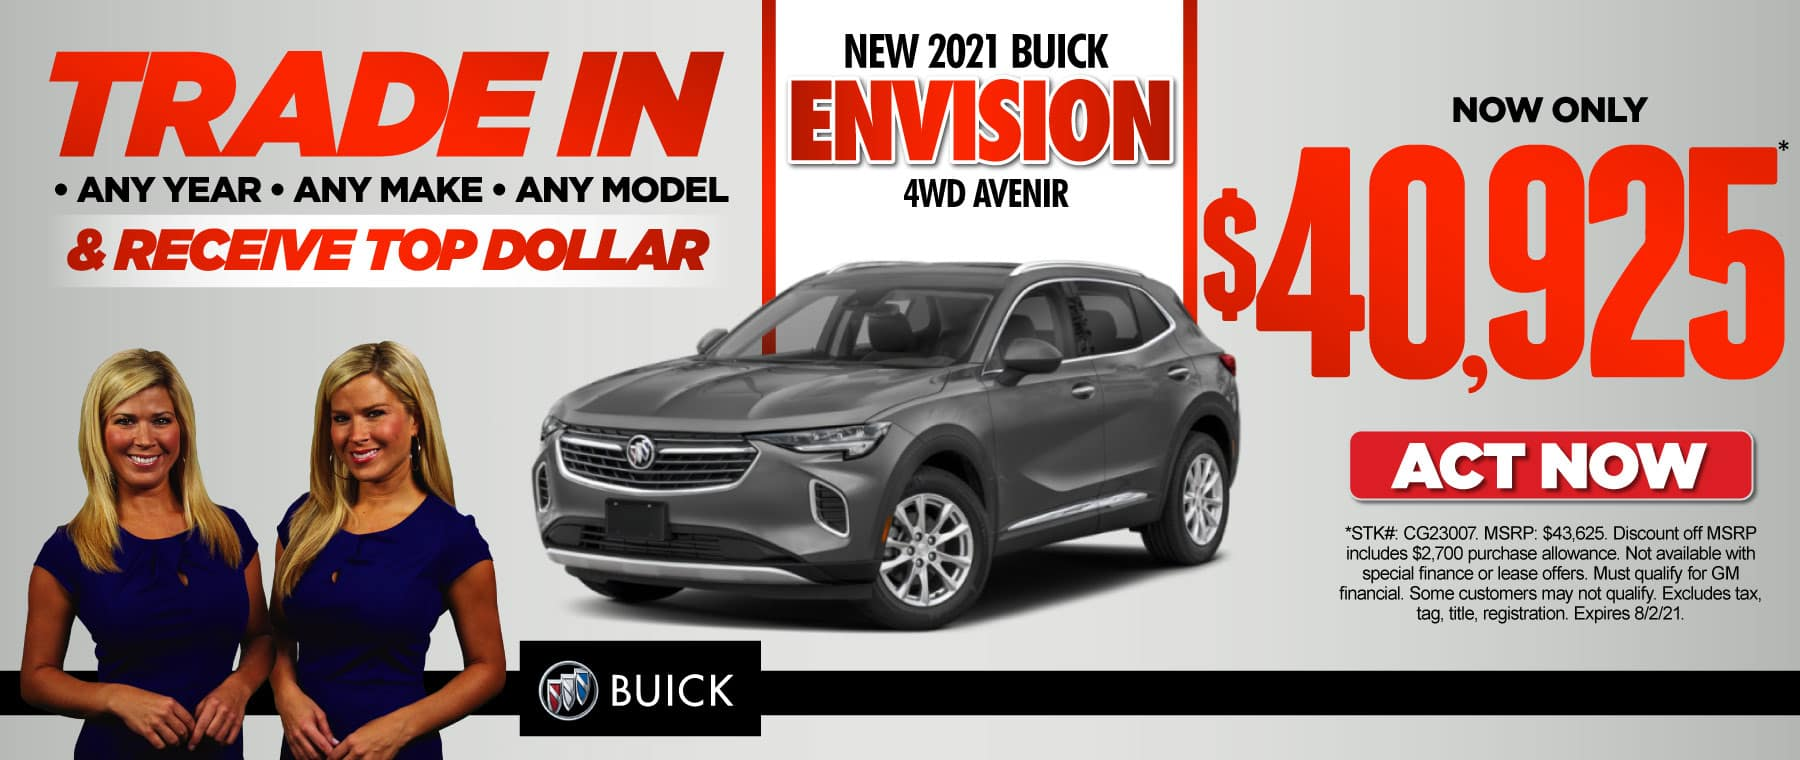 New 2021 Buick Envision Avenir now only $40,925. Act now.